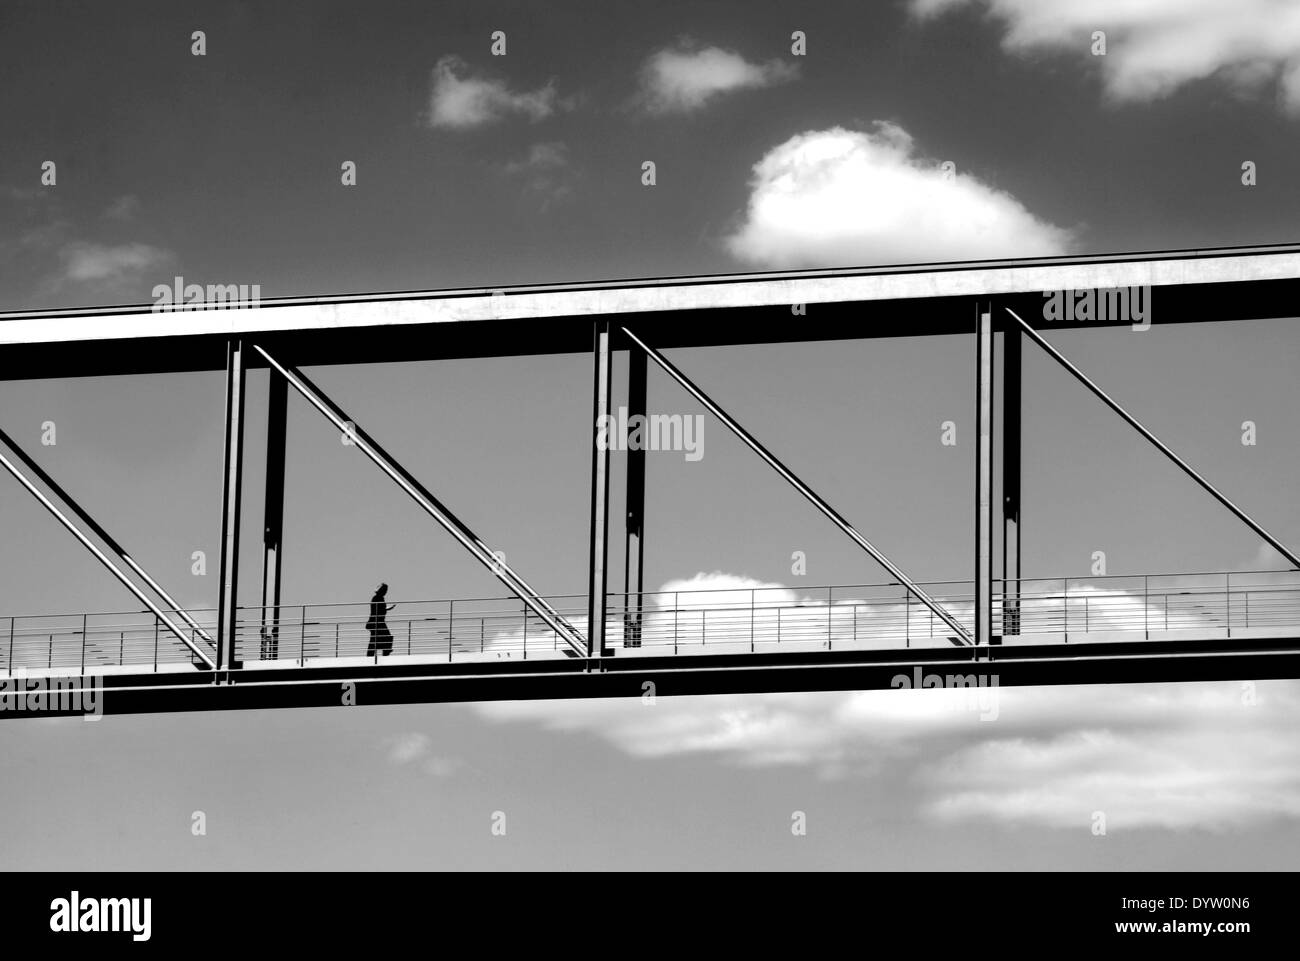 Lonely Woman Walking Over Bridge Stock Photos & Lonely ...